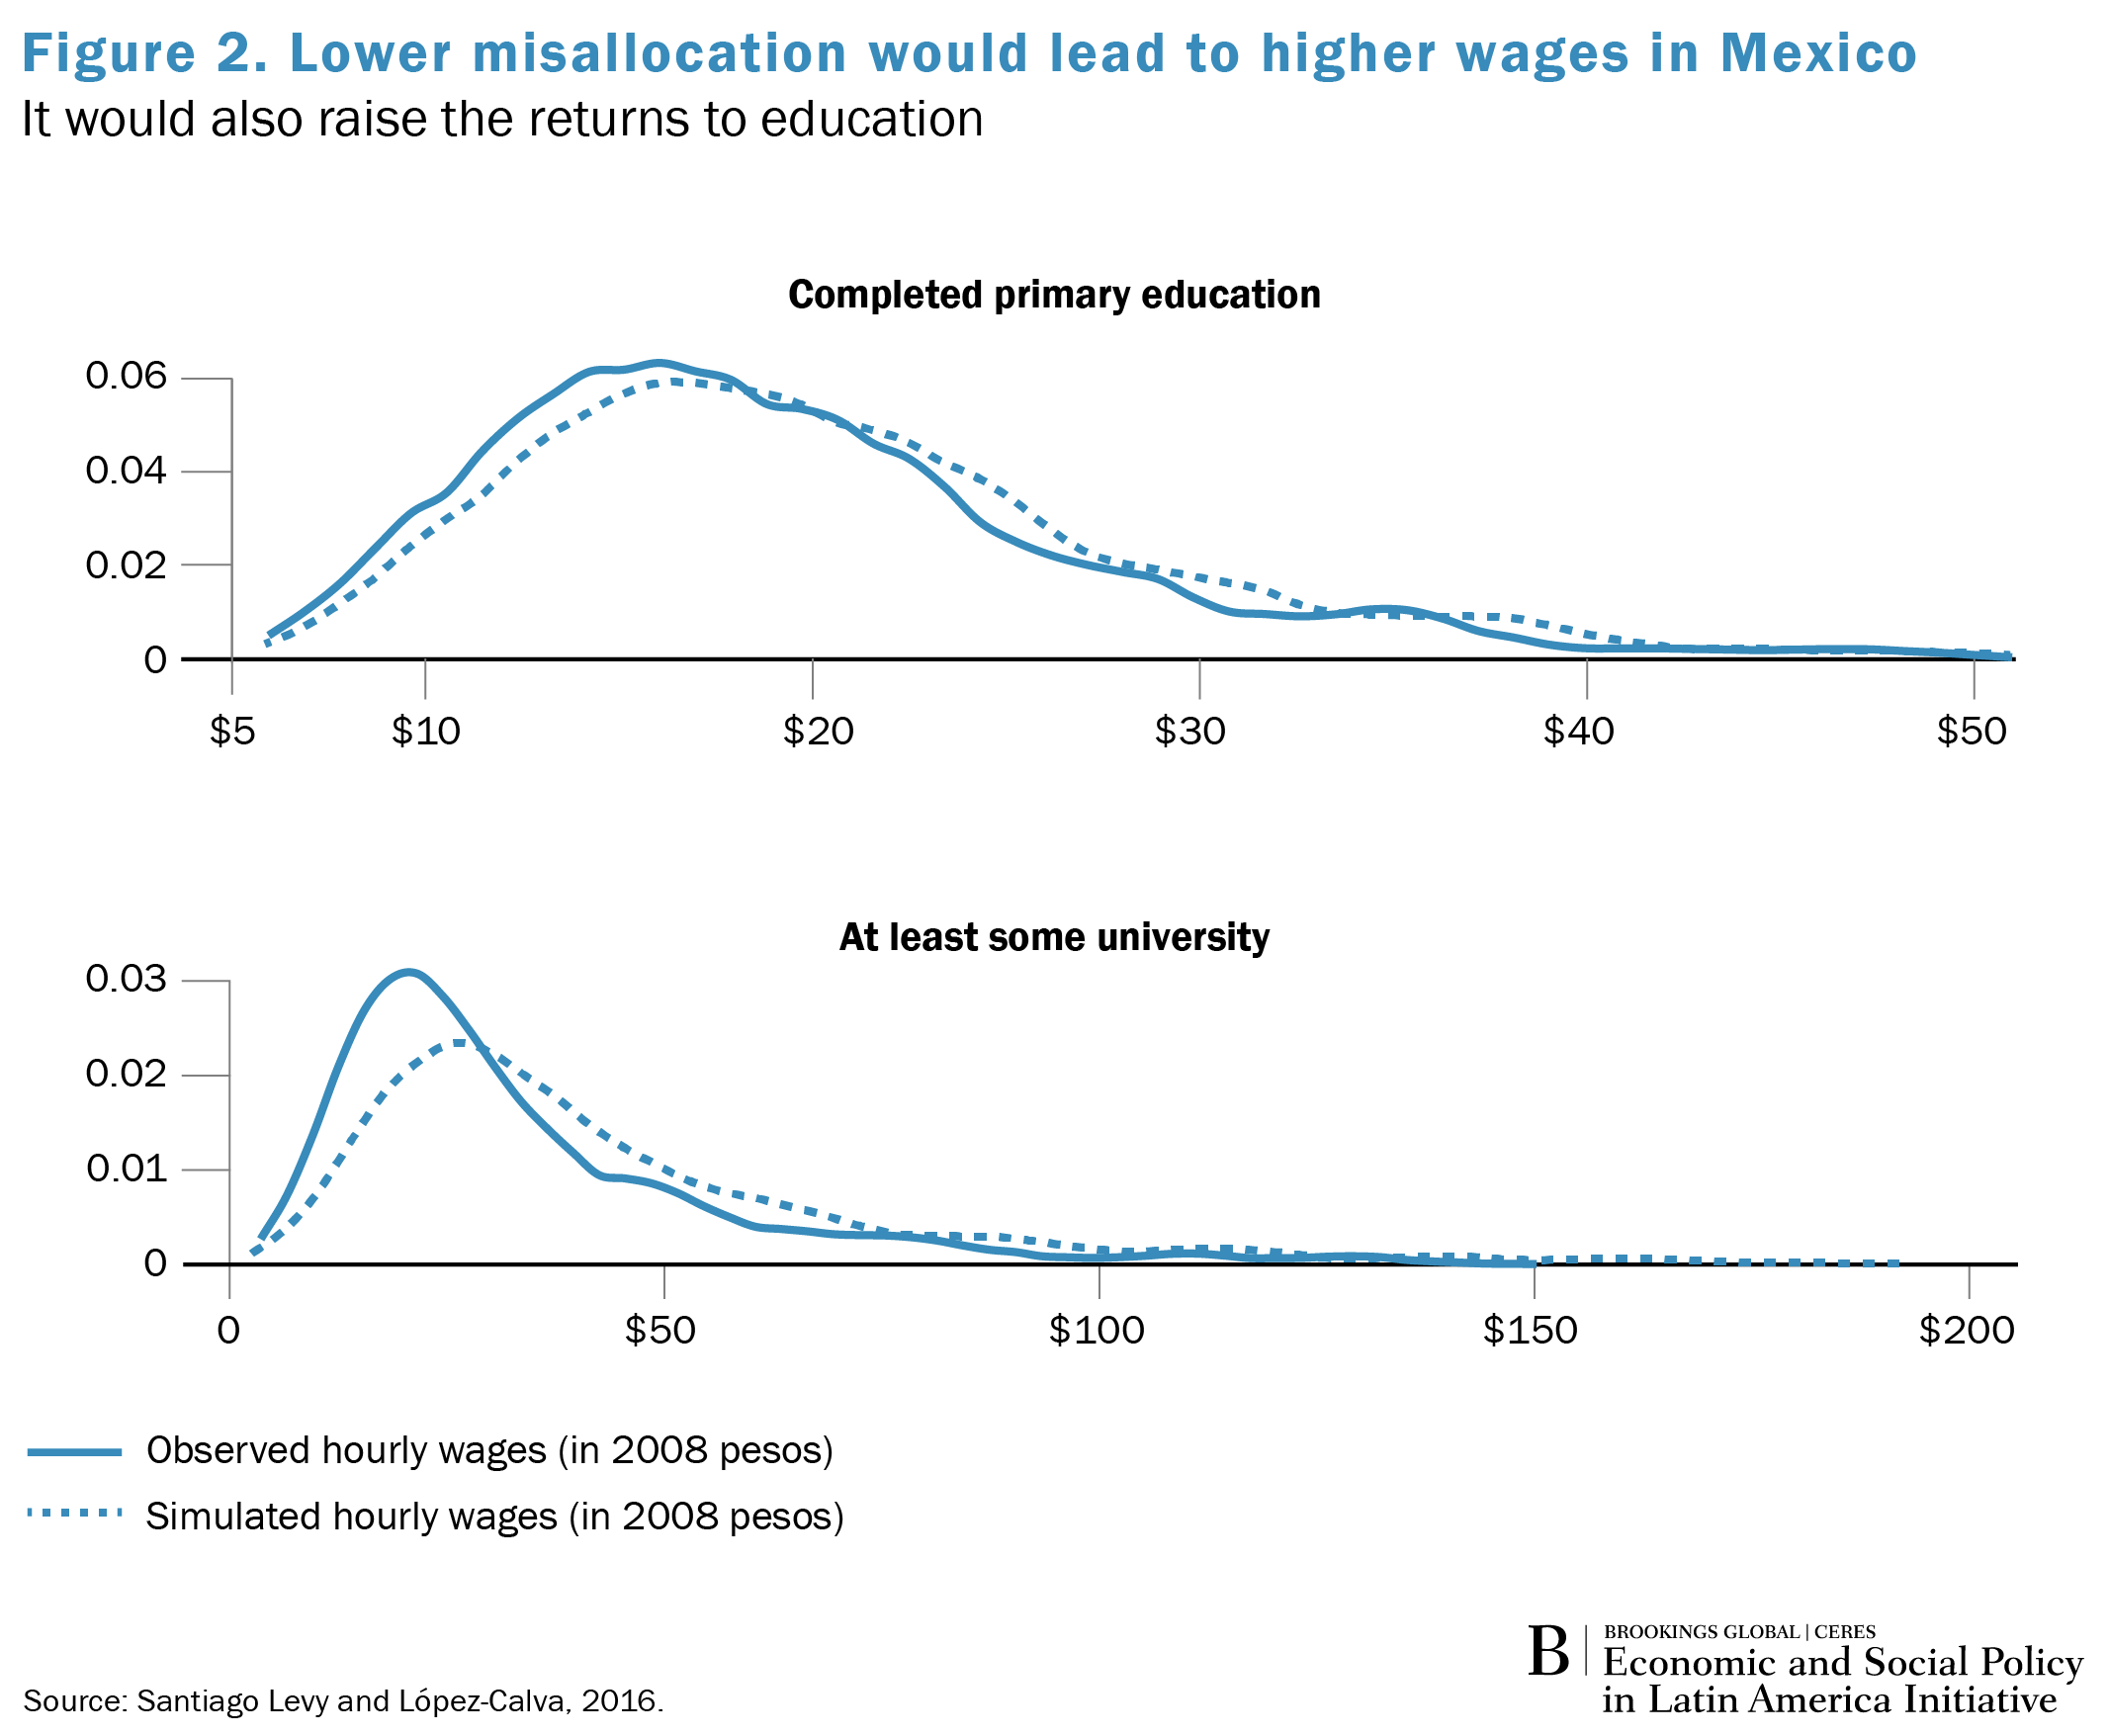 https://www.brookings.edu/wp-content/uploads/2018/03/global_spotlight_la_mexico_wages.png